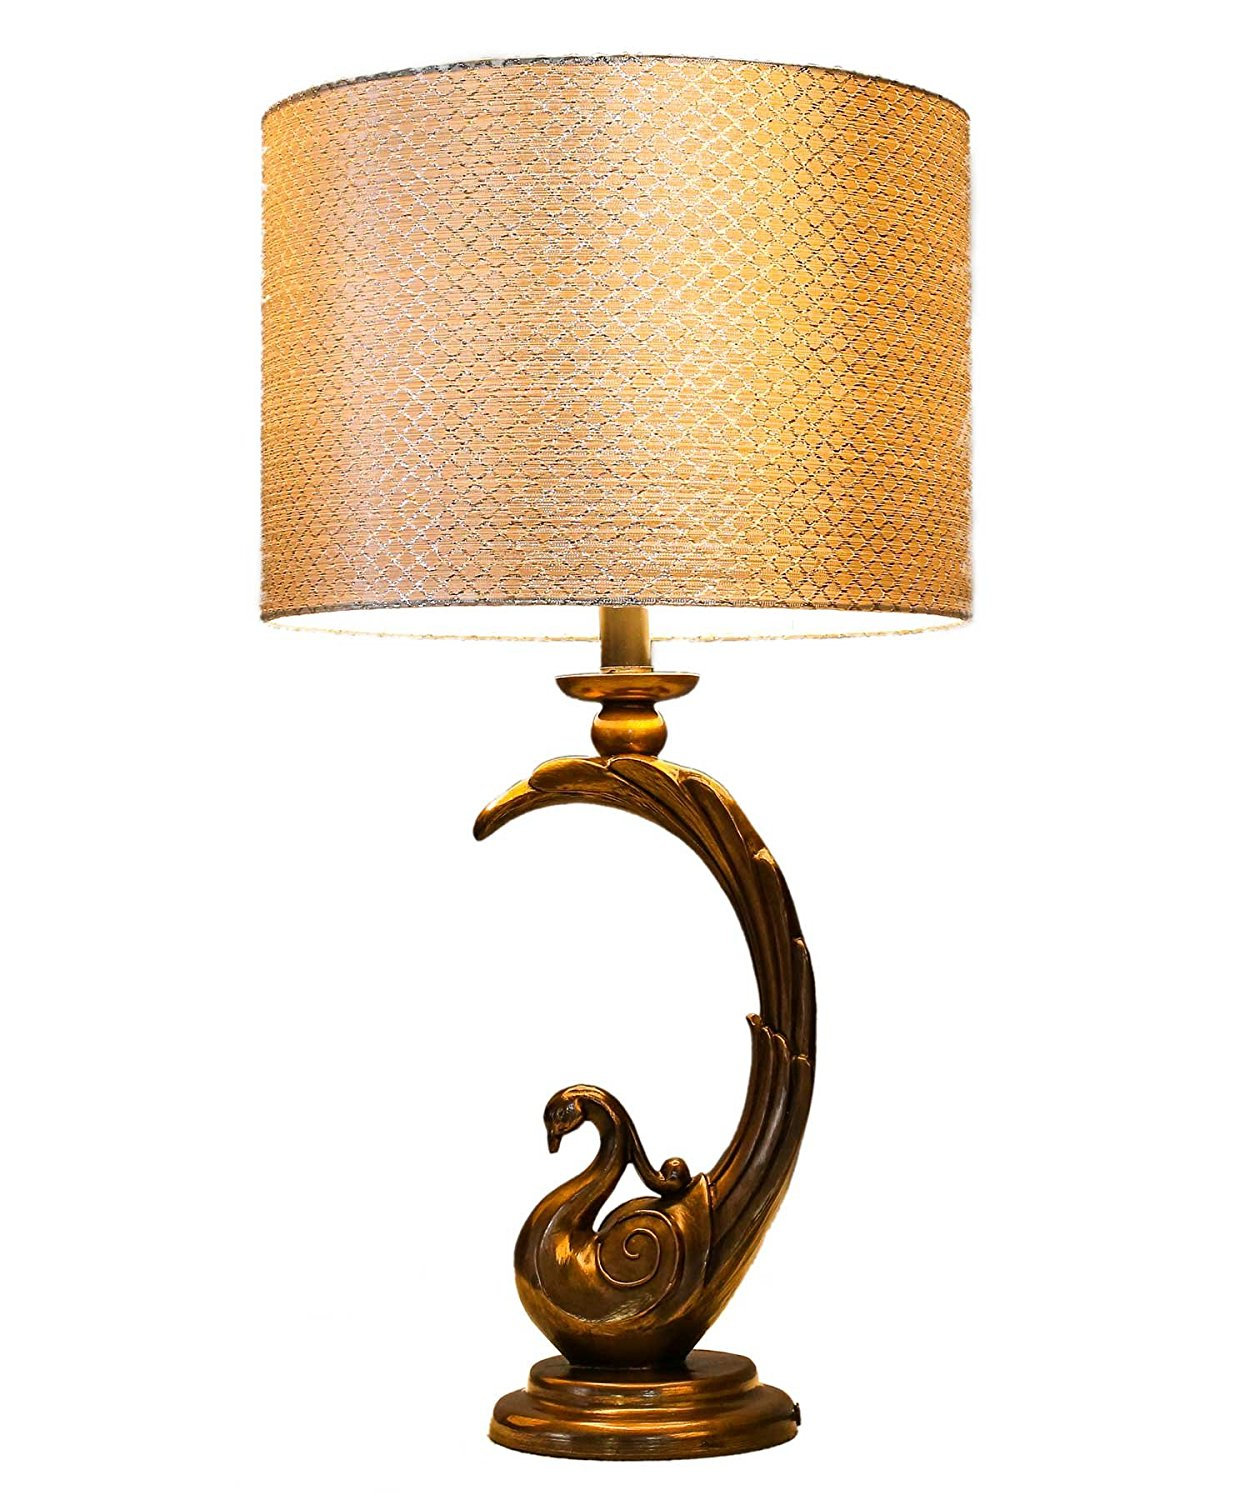 shimmering-peacock-lamp